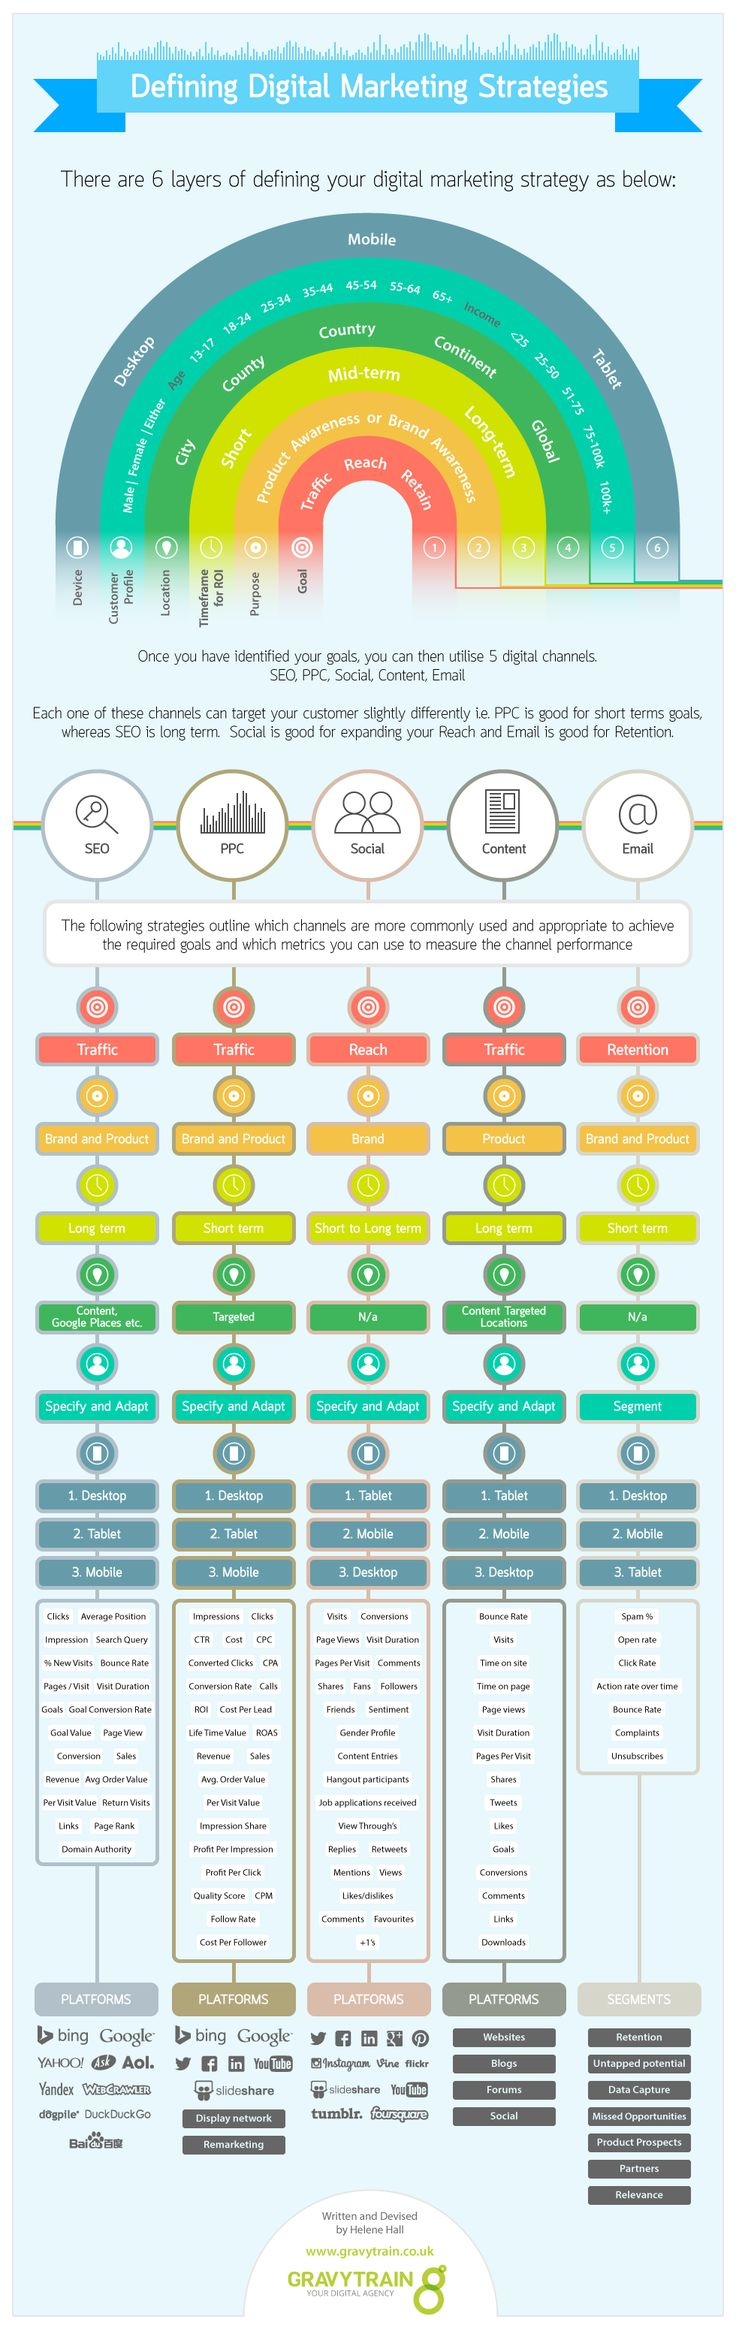 What digital marketing channel works best for specific goals? This infographic demonstrate the process and metrics that you can use for measuring performance.